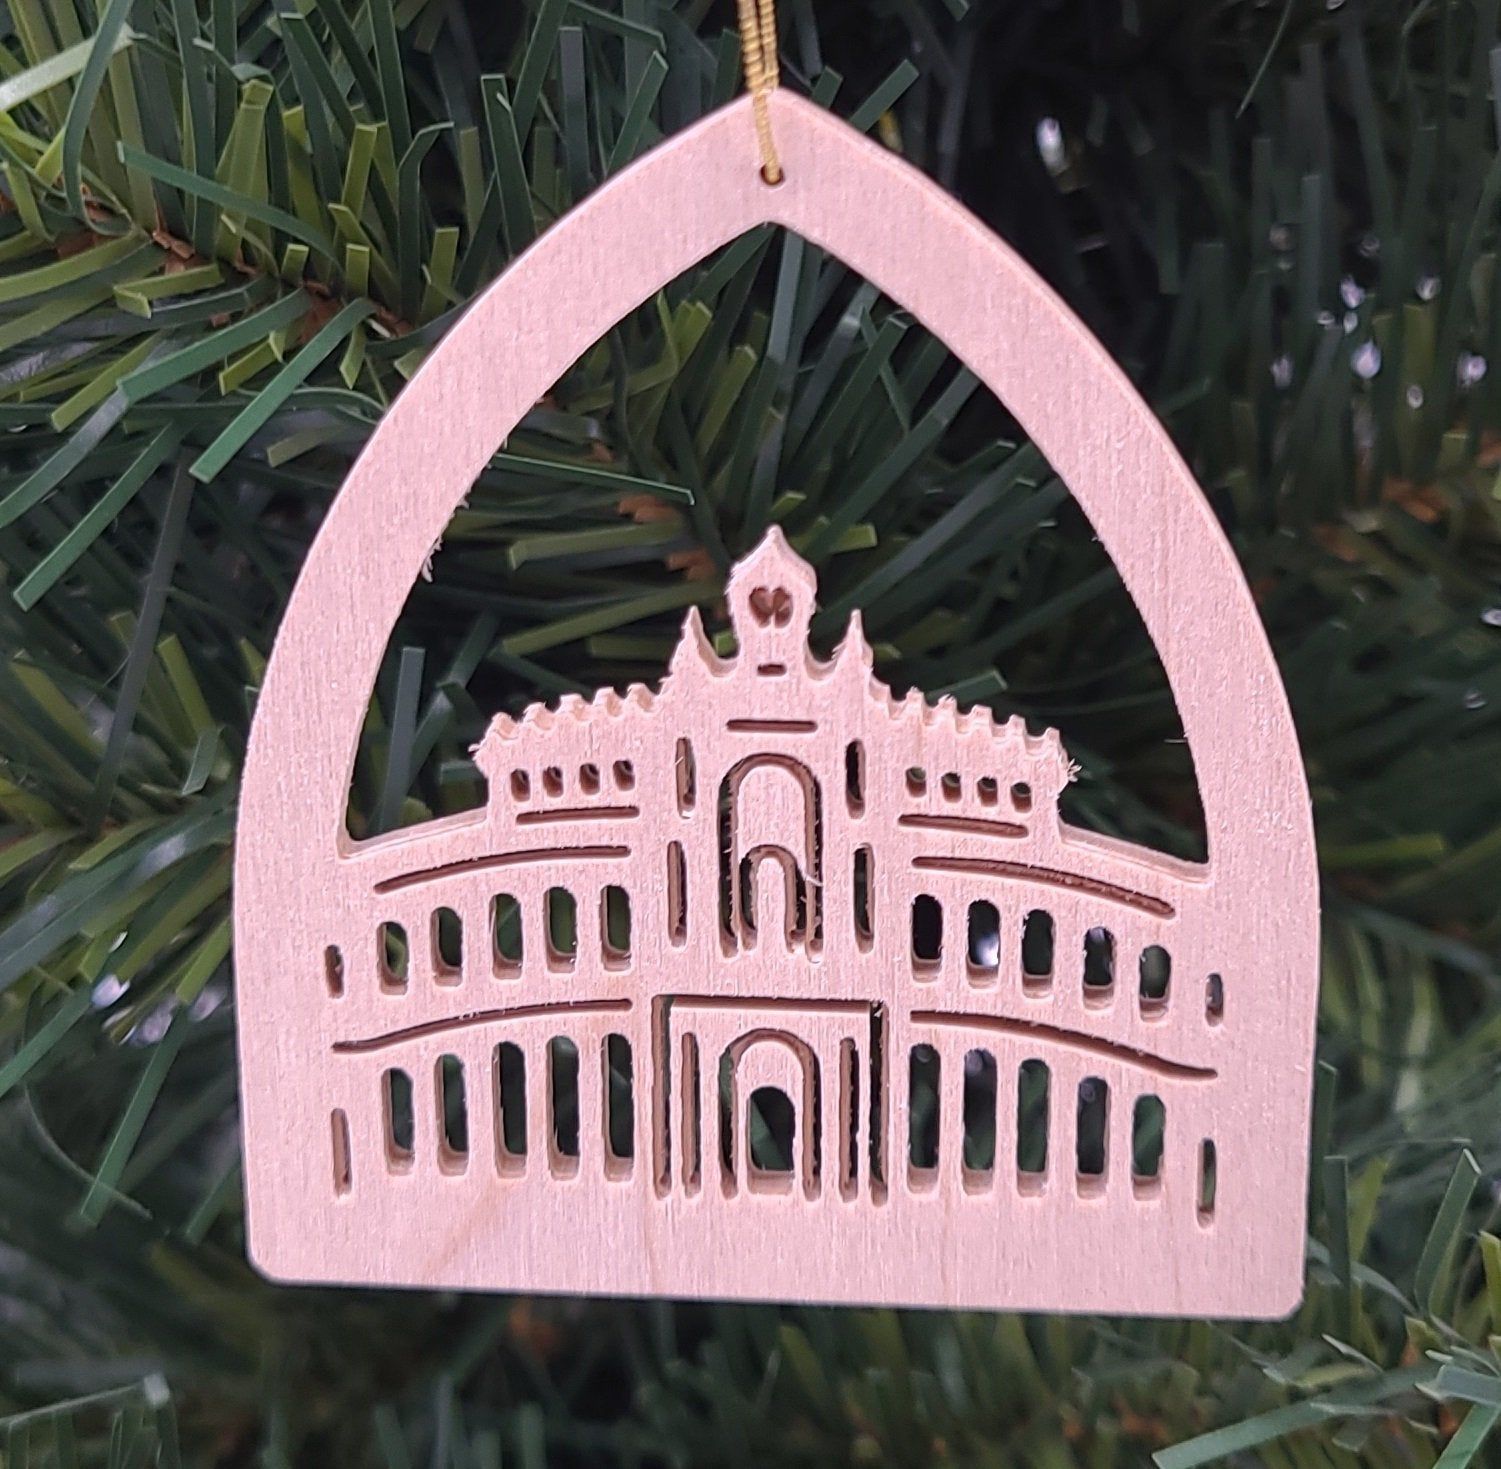 Handmade Wood Semper Opera hanging ornament - Schmidt Christmas Market Christmas Decoration